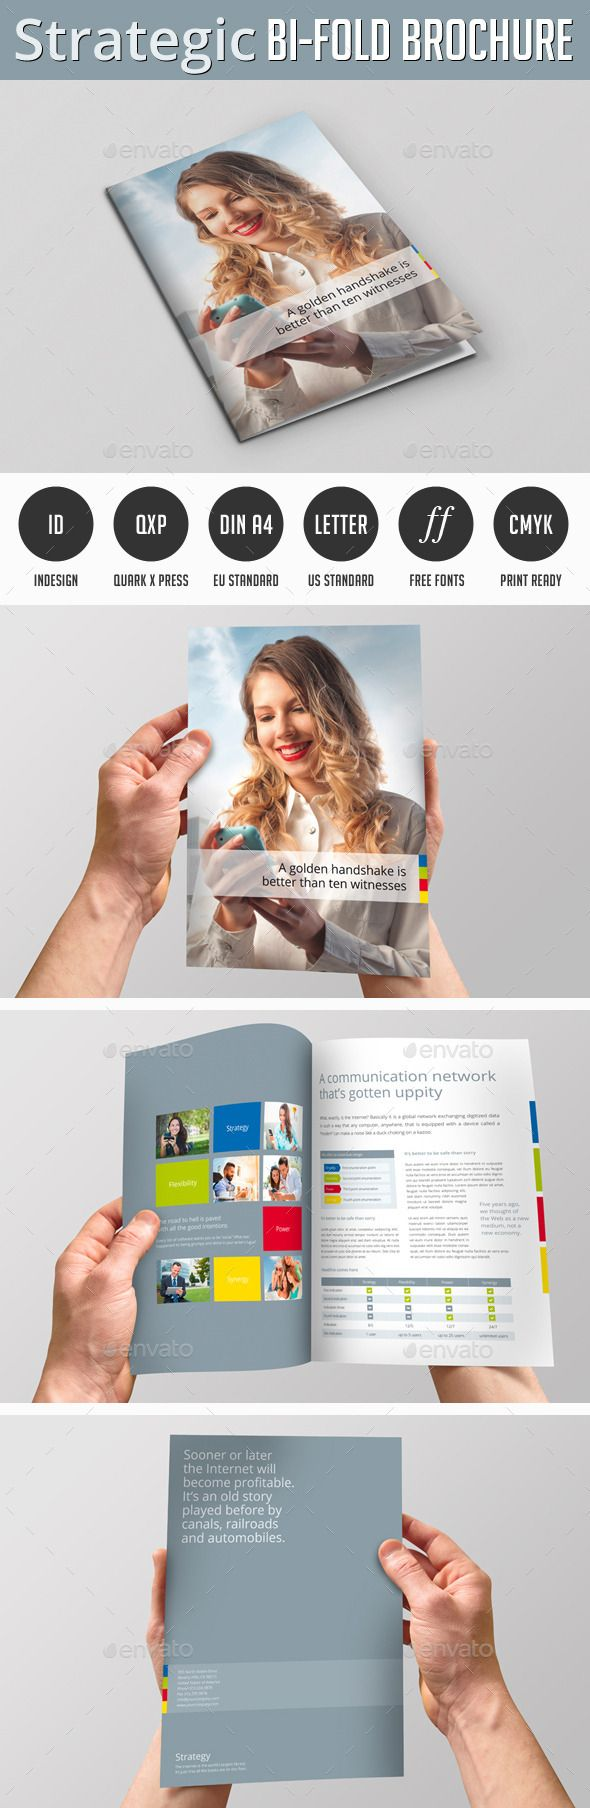 Strategic Bi-Fold Brochure (Quark QXP, CS3, 8.5x11, 4 page, advertisement, advertising folder, bi-fold, bifold flyer, bifold template, booklet, branding, brochure, brochure template, business brochure, company brochure, corporate identity, design brochure, DIN A4 brochure, flyer template, folded, gray, half fold, leaflet, letter brochure, mobile brochure, modern brochure, portfolio, strategic, strategic brochure)